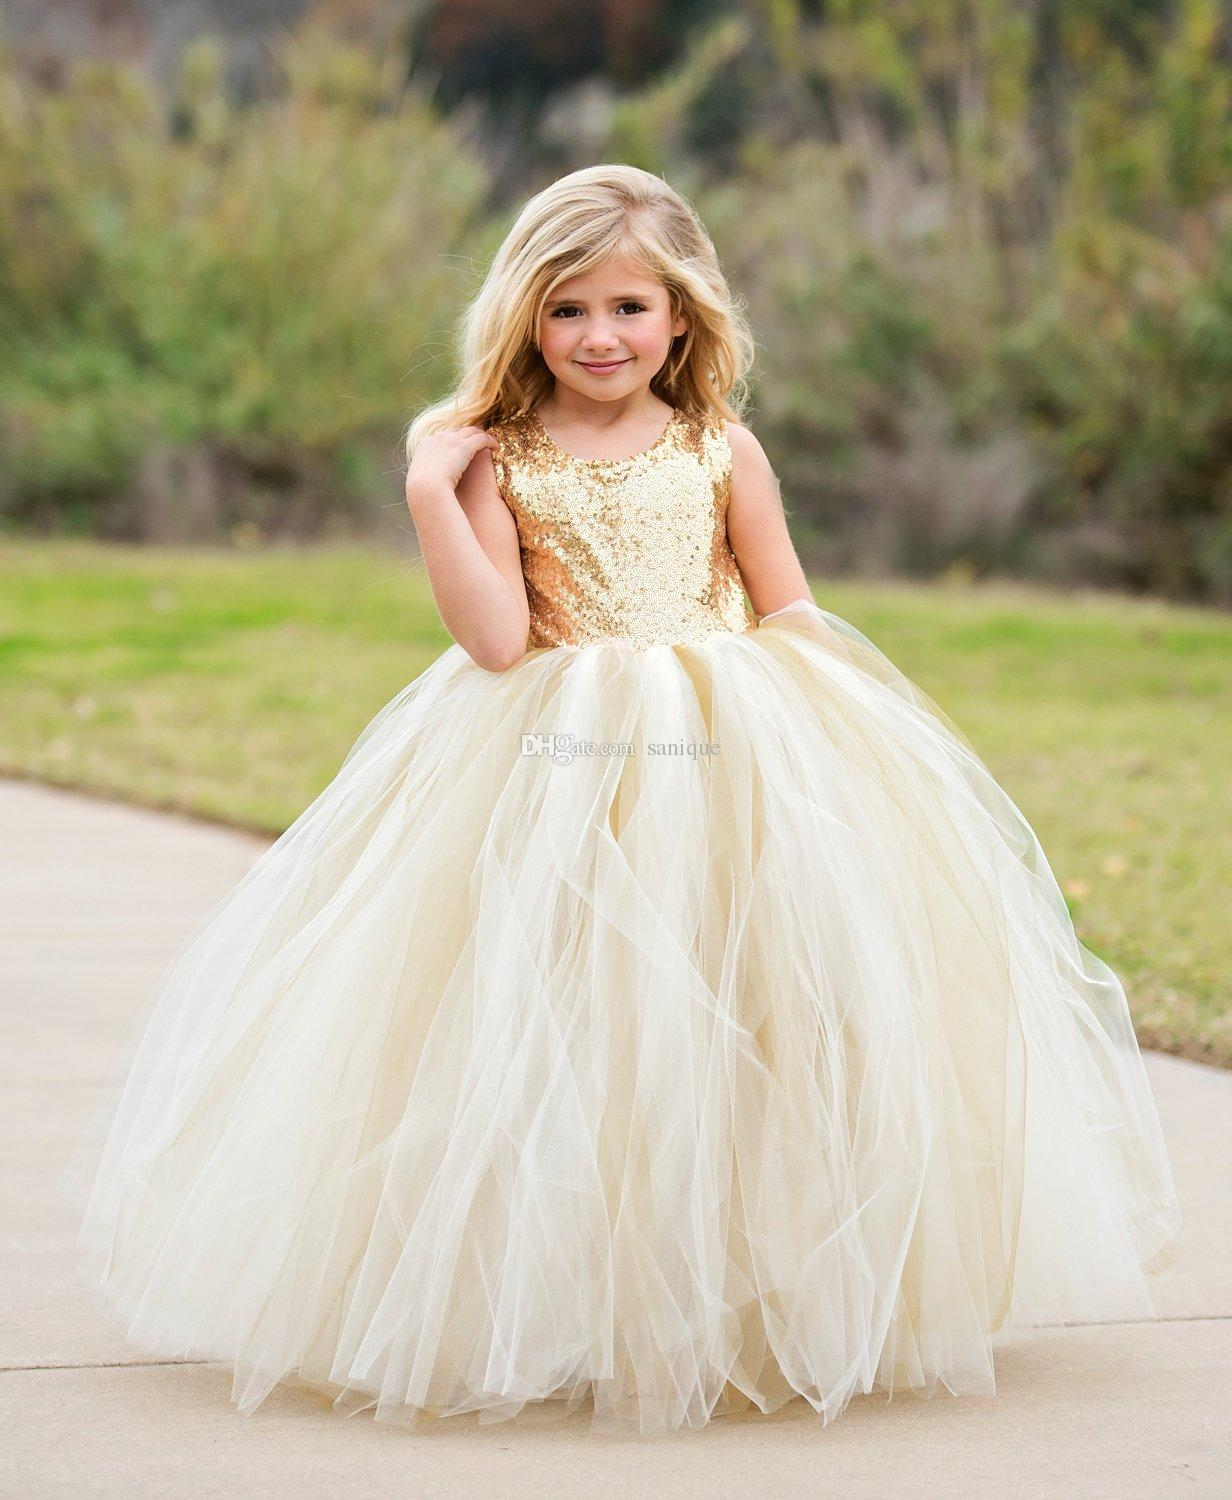 b69bc56ff93 2018 High Quality Flower Girls Dresses Sparkly Gold Sequins Ivory Skirt  Kids Long Formal Wedding Party Gowns Sleeveless Open Back Burgundy Flower  Girl ...